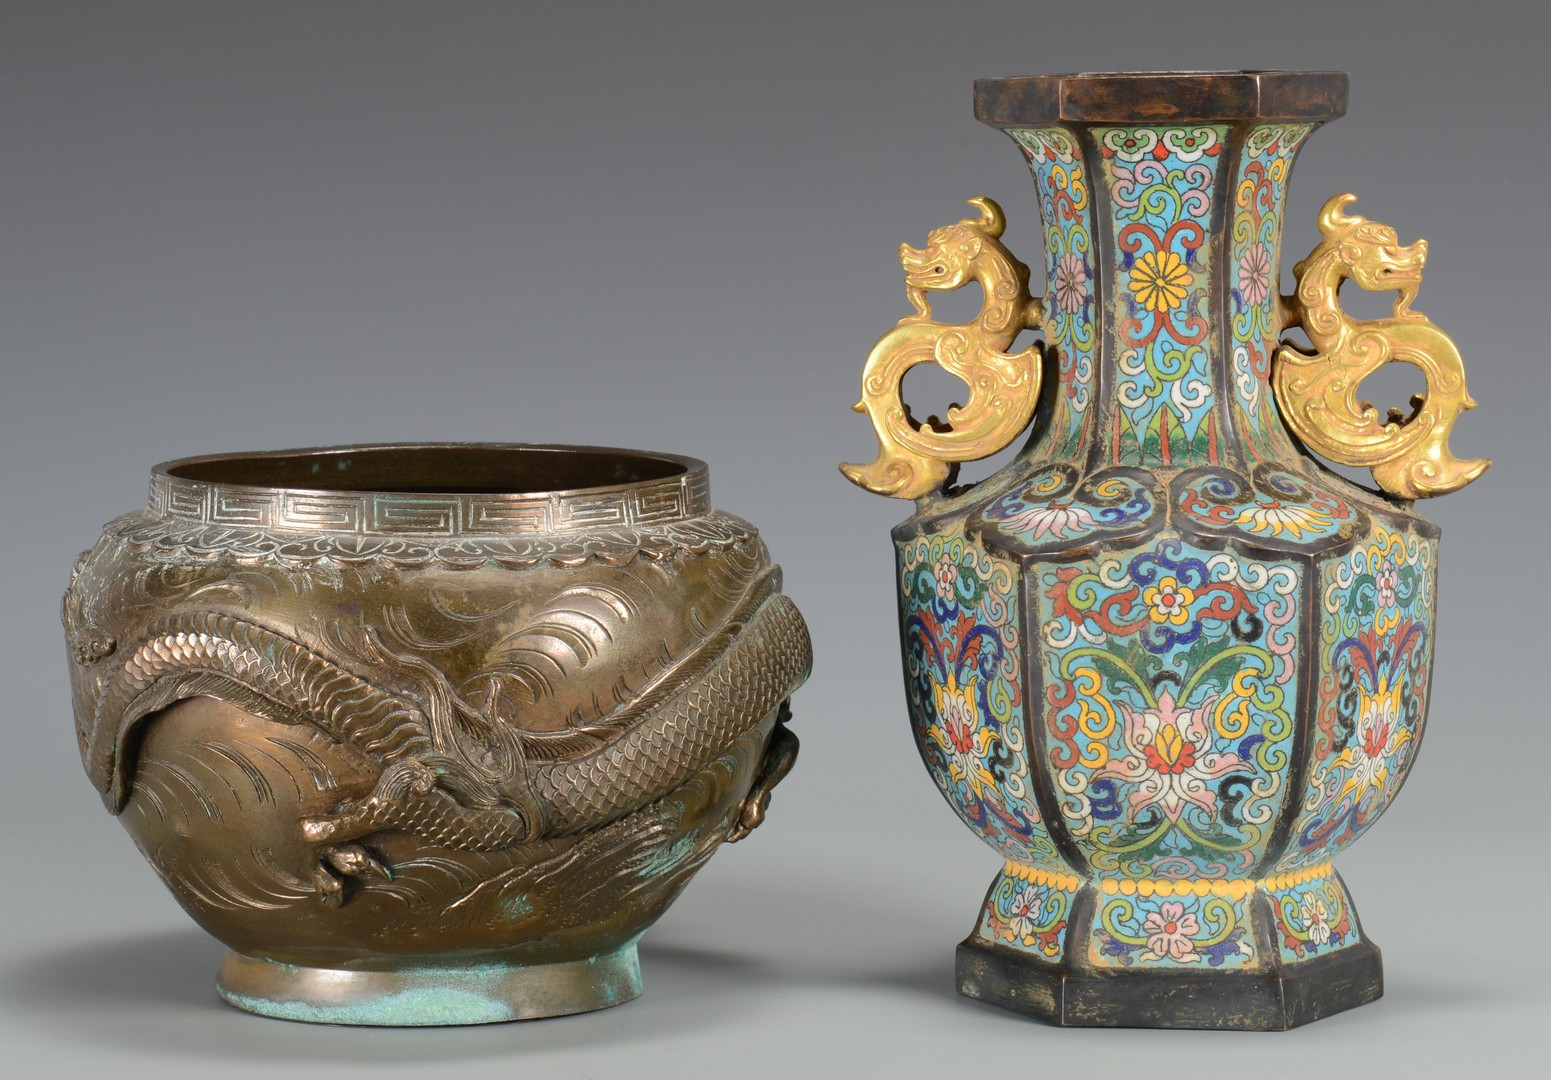 Lot 3594187: 2 Cloisonne and Bronze Dragon Vessels